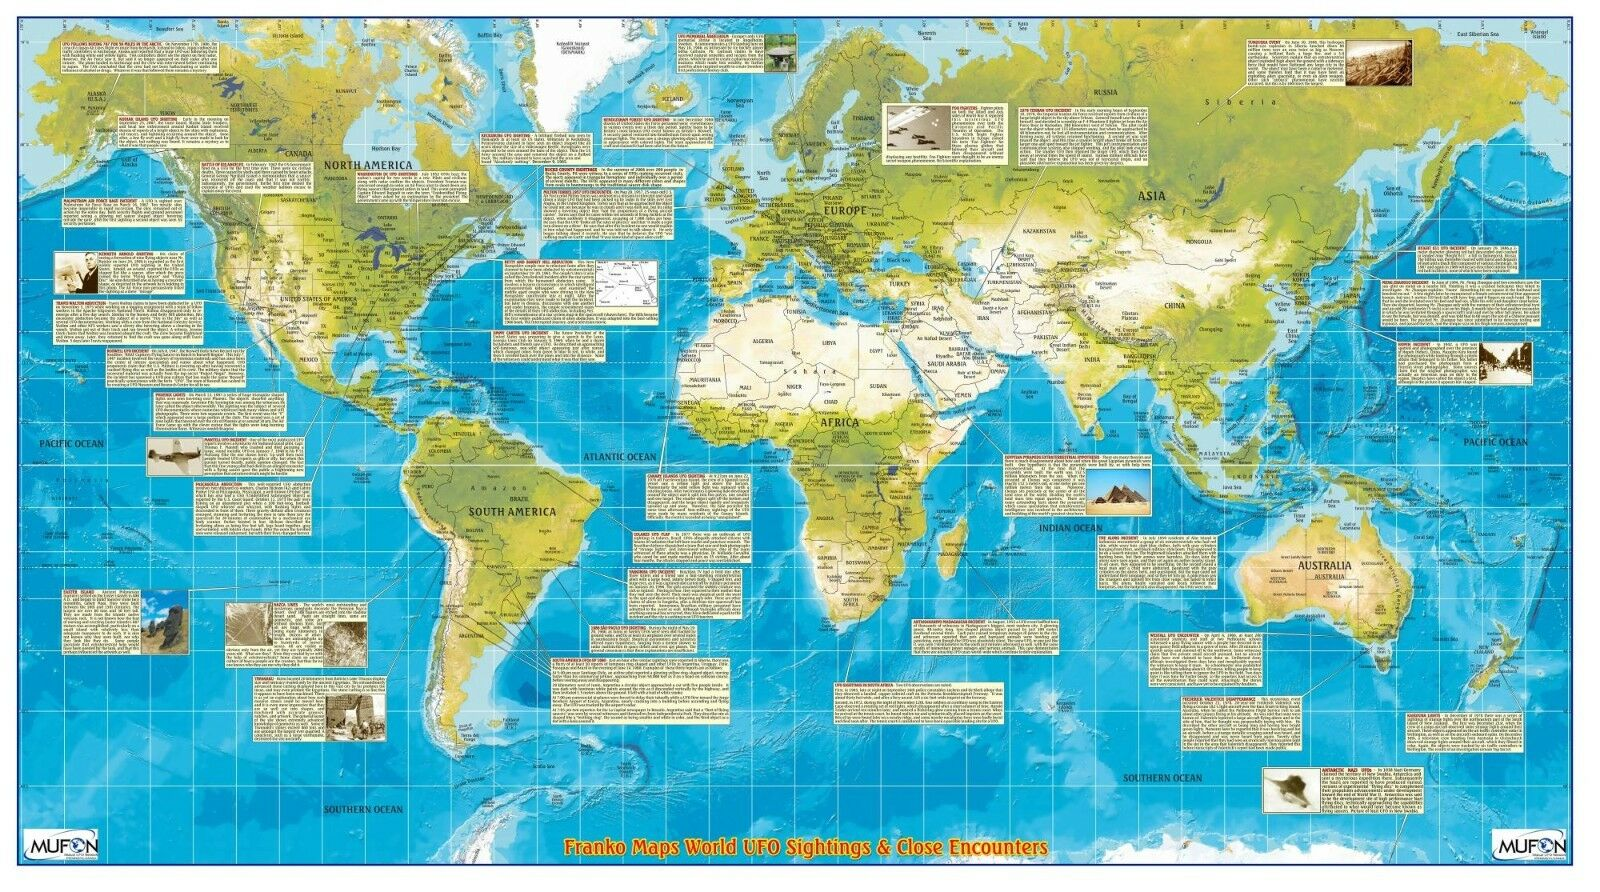 Ufo sightings close encounters world map poster ebay picture 1 of 3 gumiabroncs Gallery